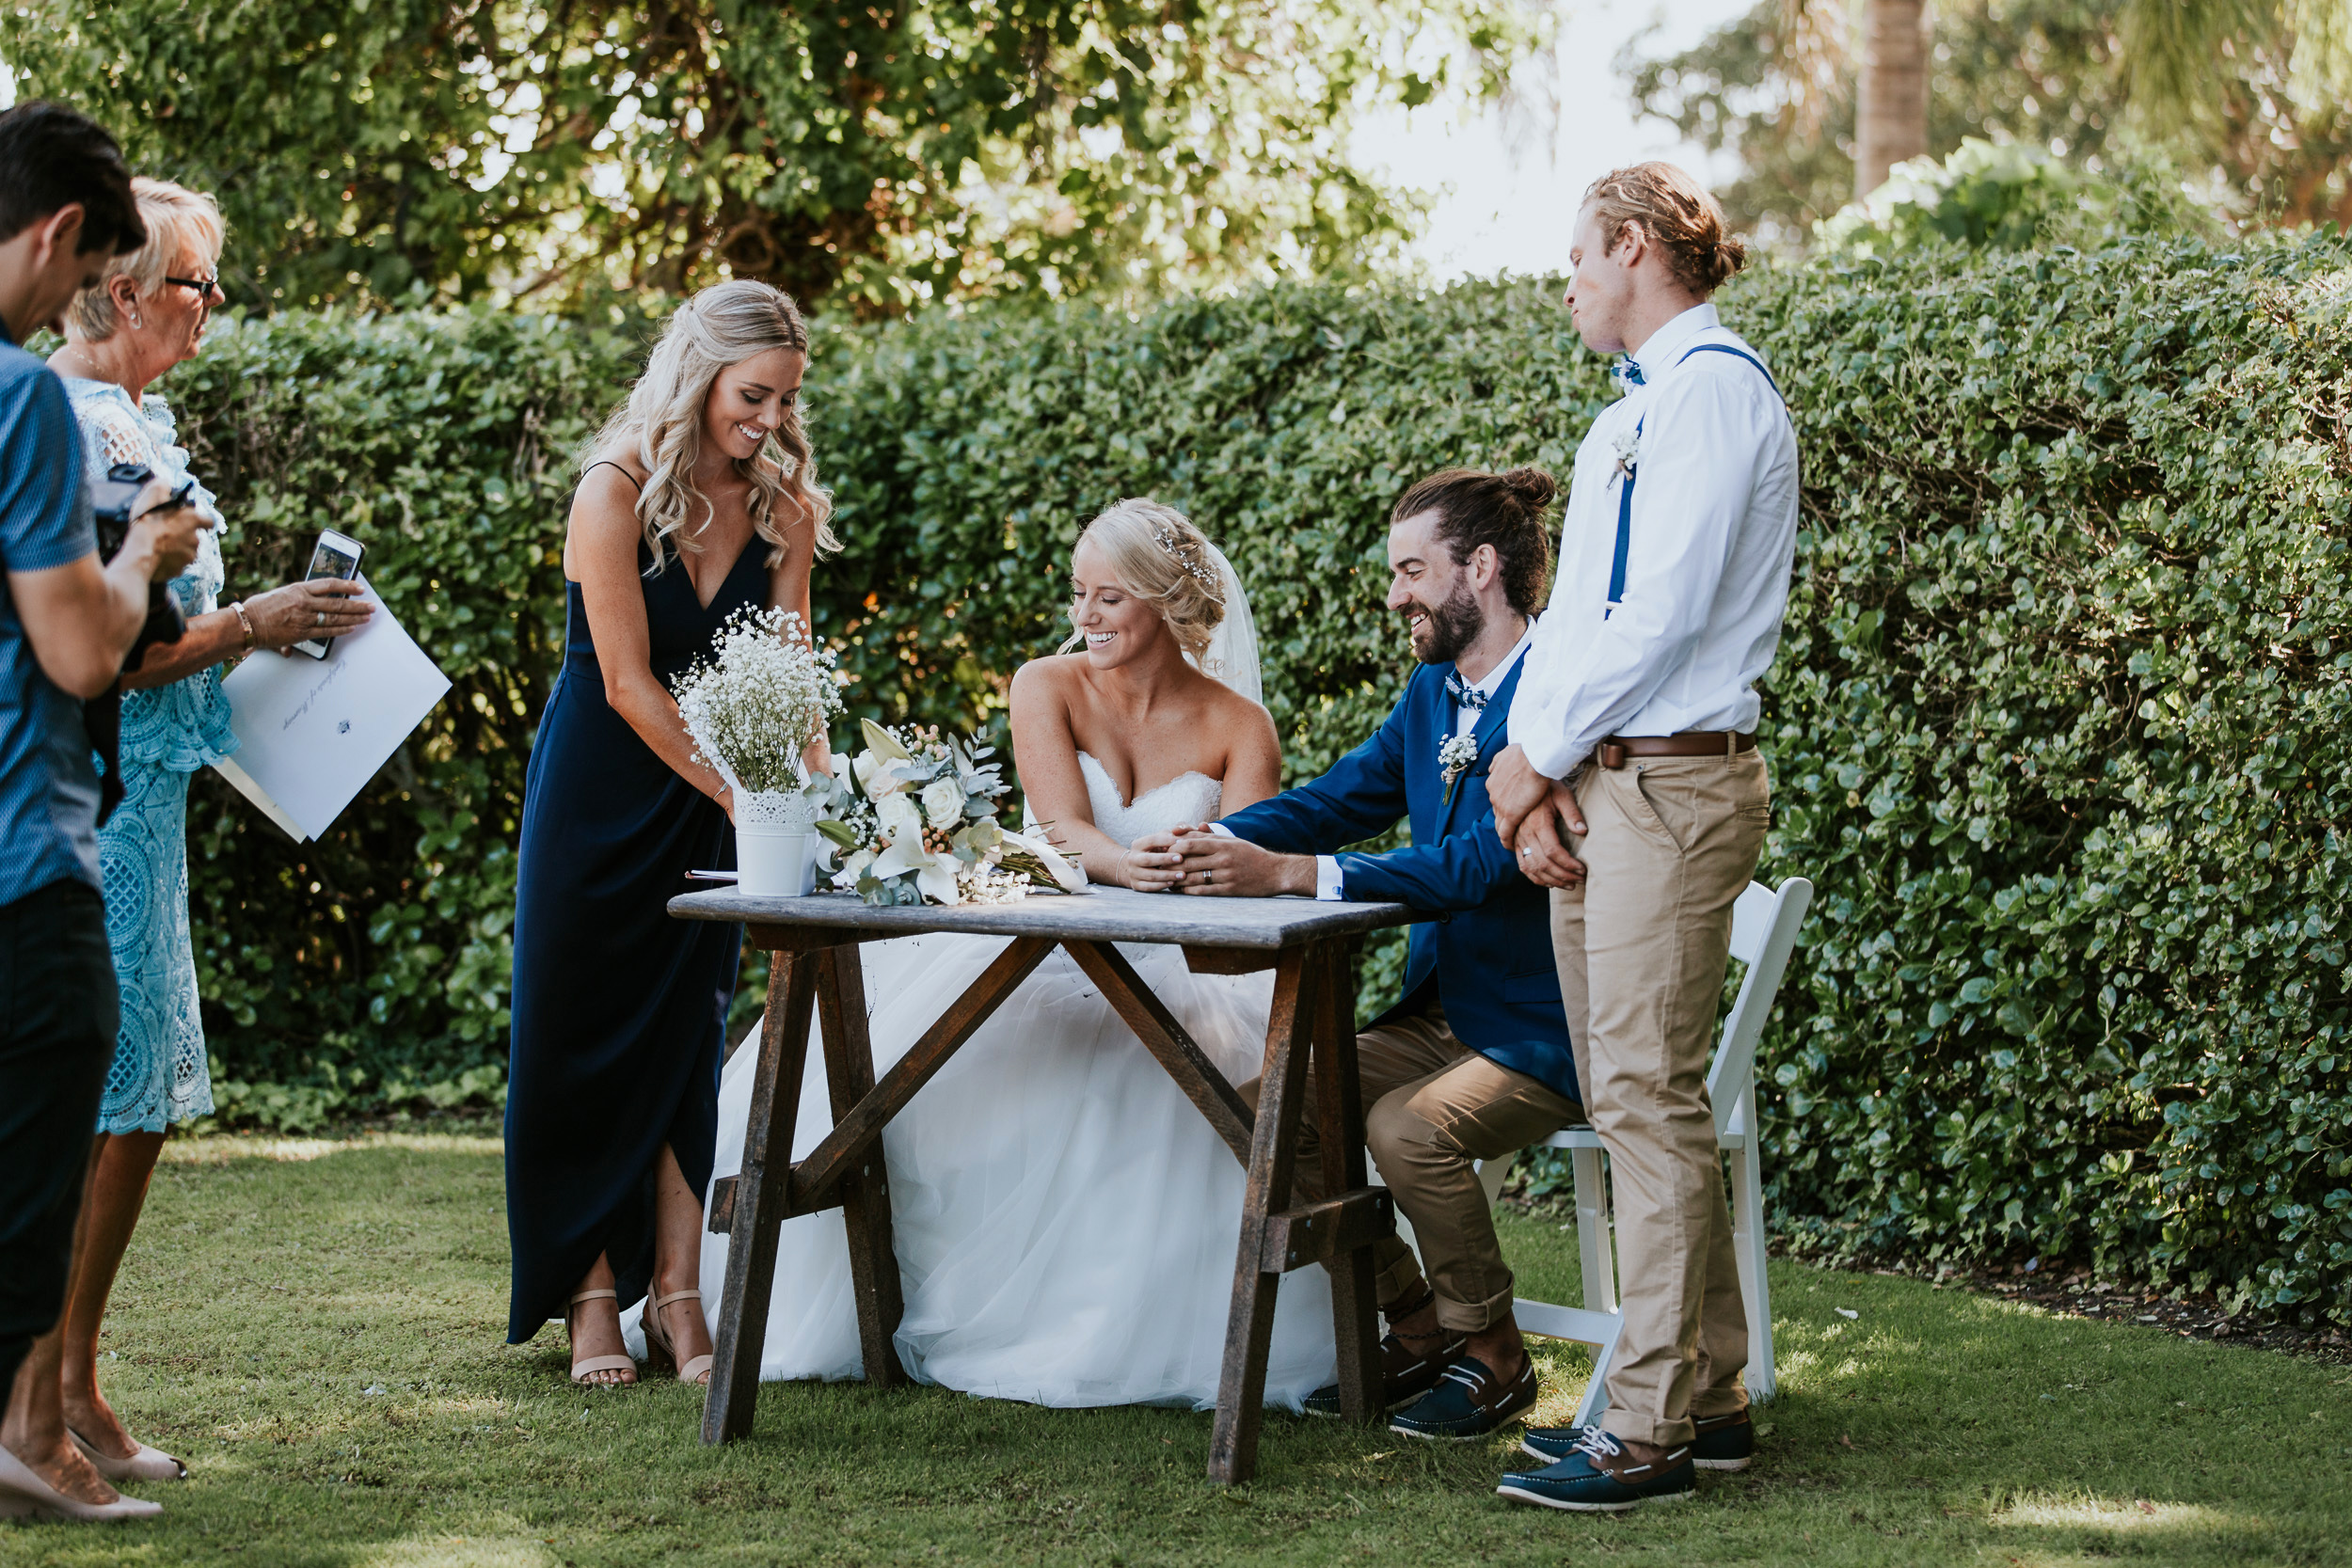 20170311 - Holly & Dan Coolangatta Estate Wedding | 131.jpg